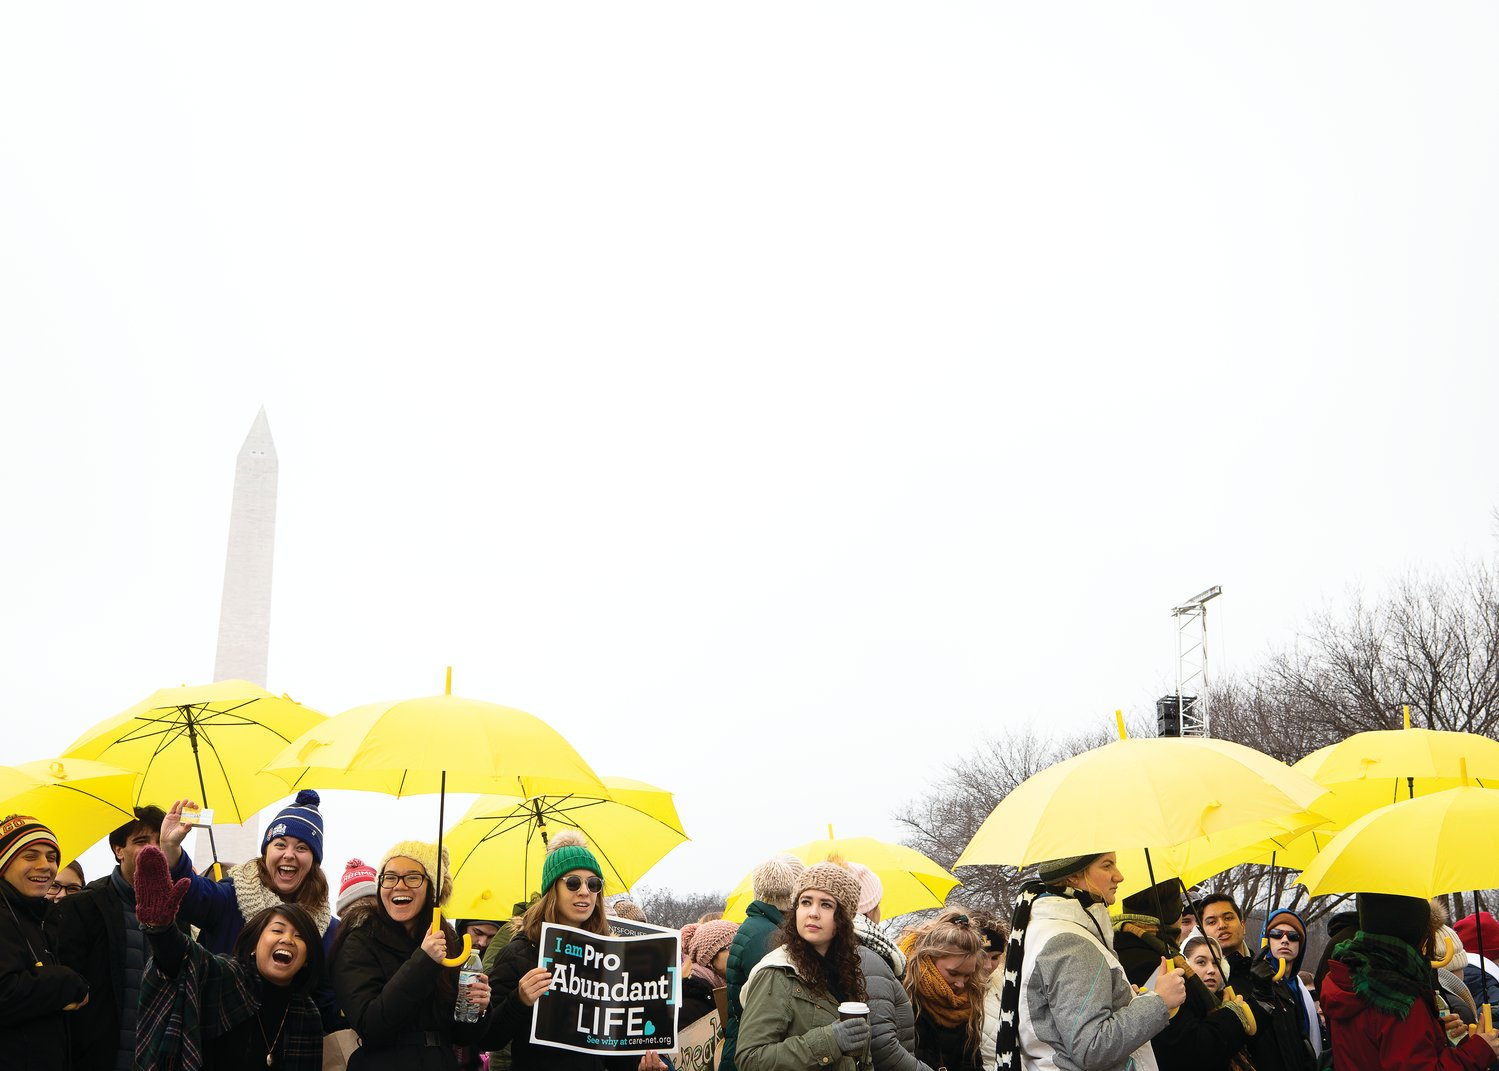 Participants march under rainy skies with the Washington Monument in the background.